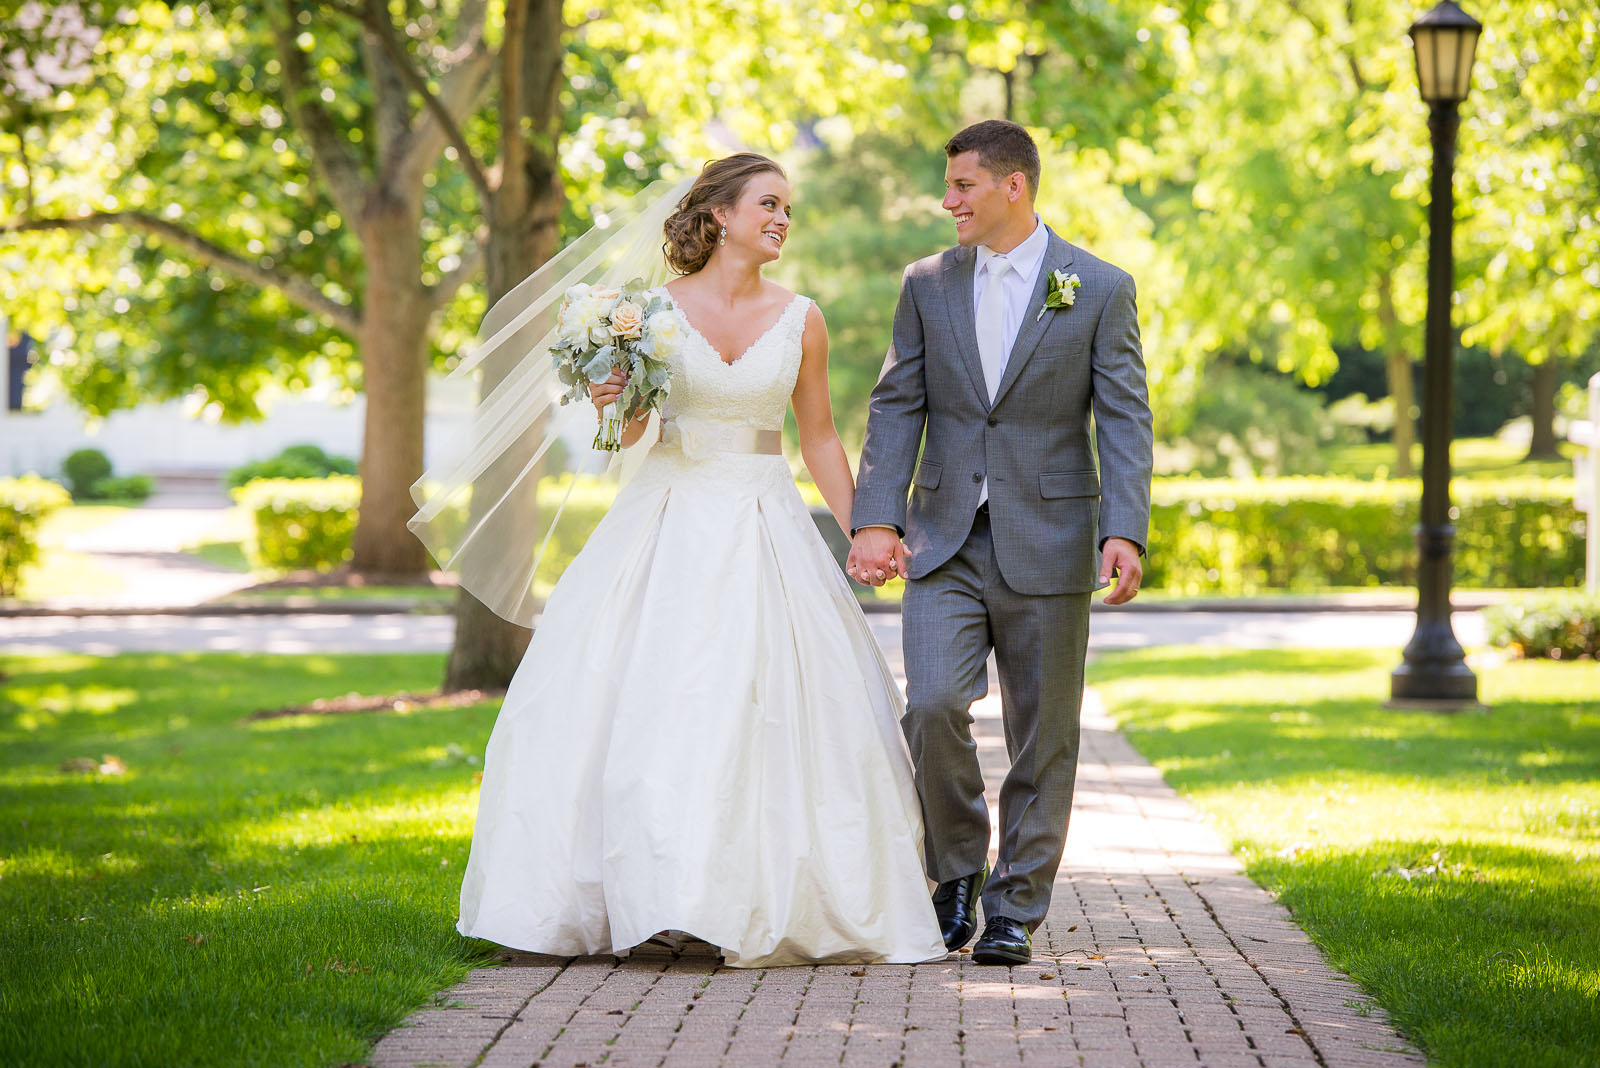 eric_and_christy_photographers_blog_wedding_madalyntyler-36